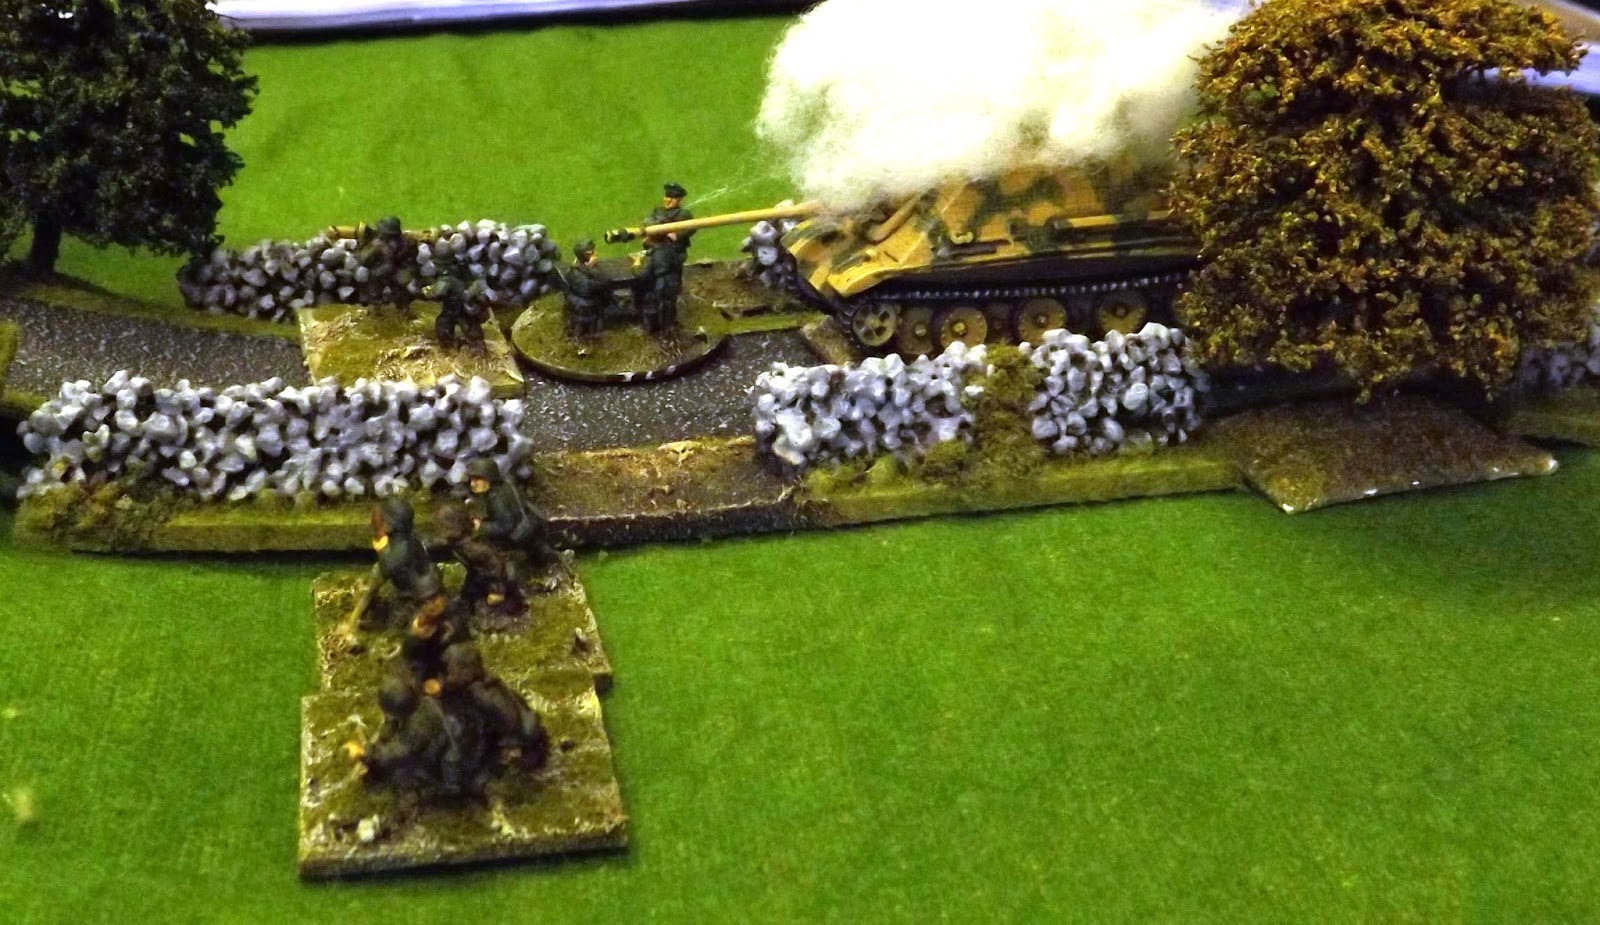 With the defence hard pressed the German command struggle to hold the line